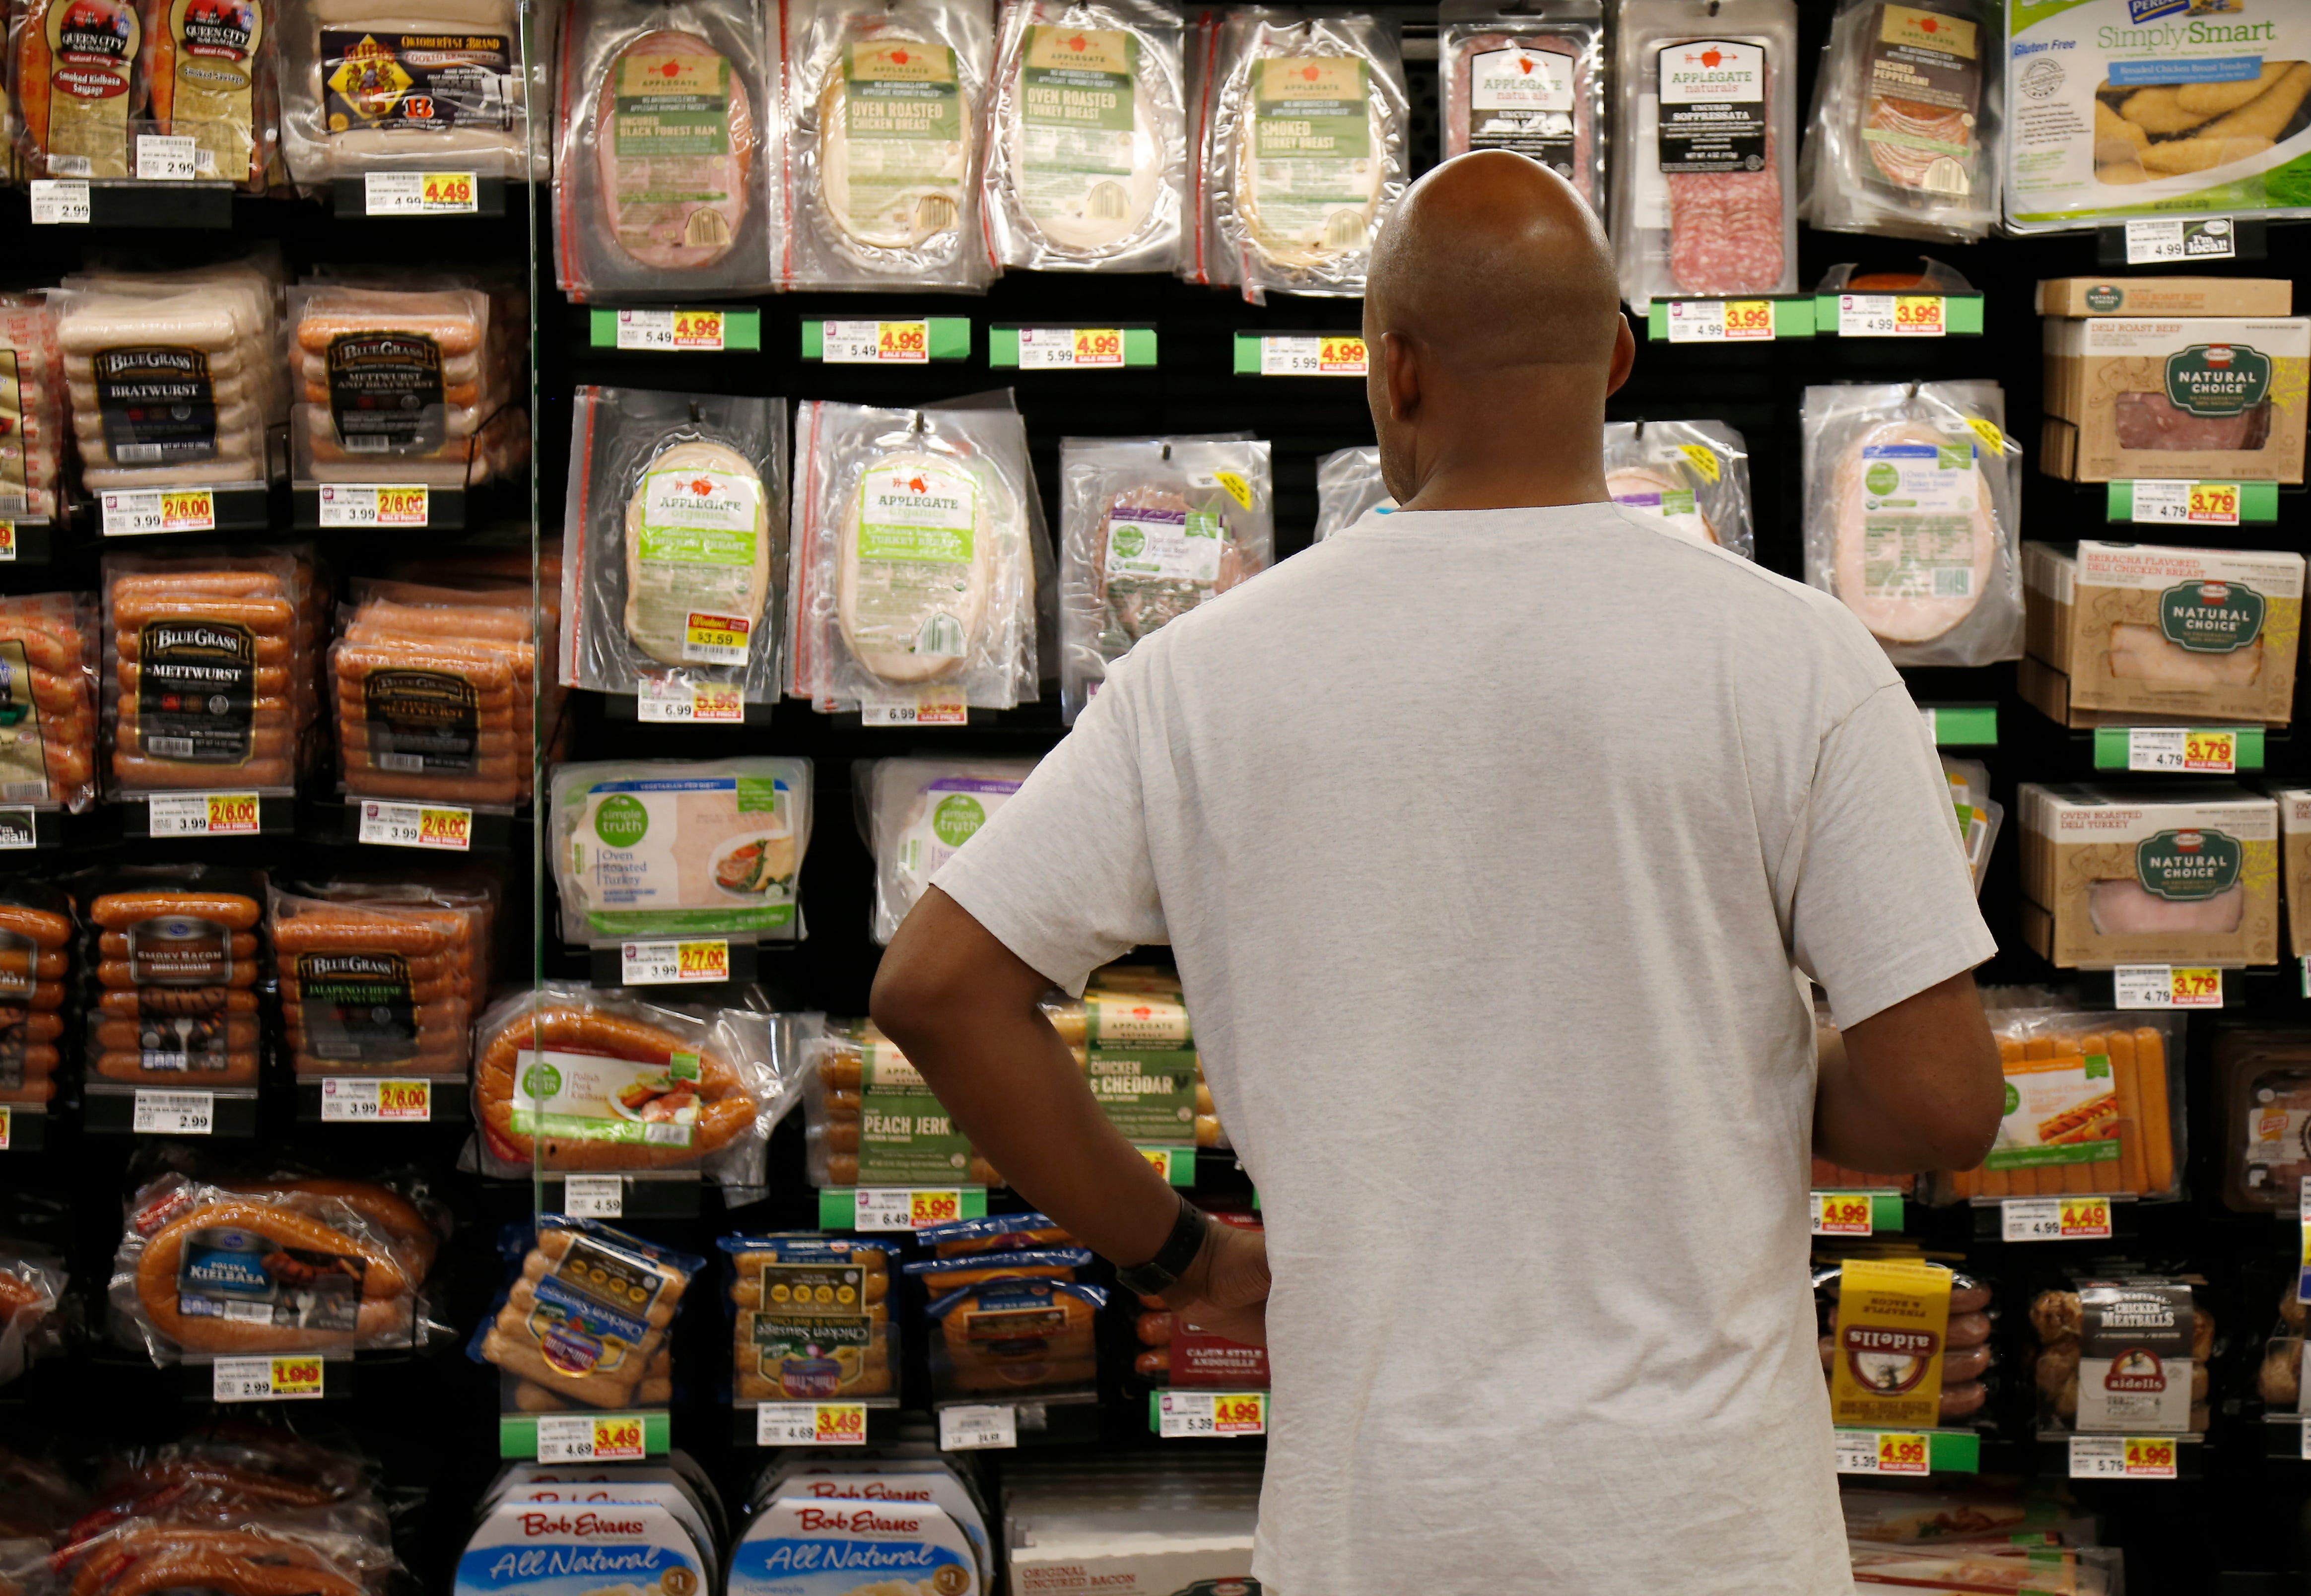 The Simple Truth Private Selection other Kroger brands drive sales